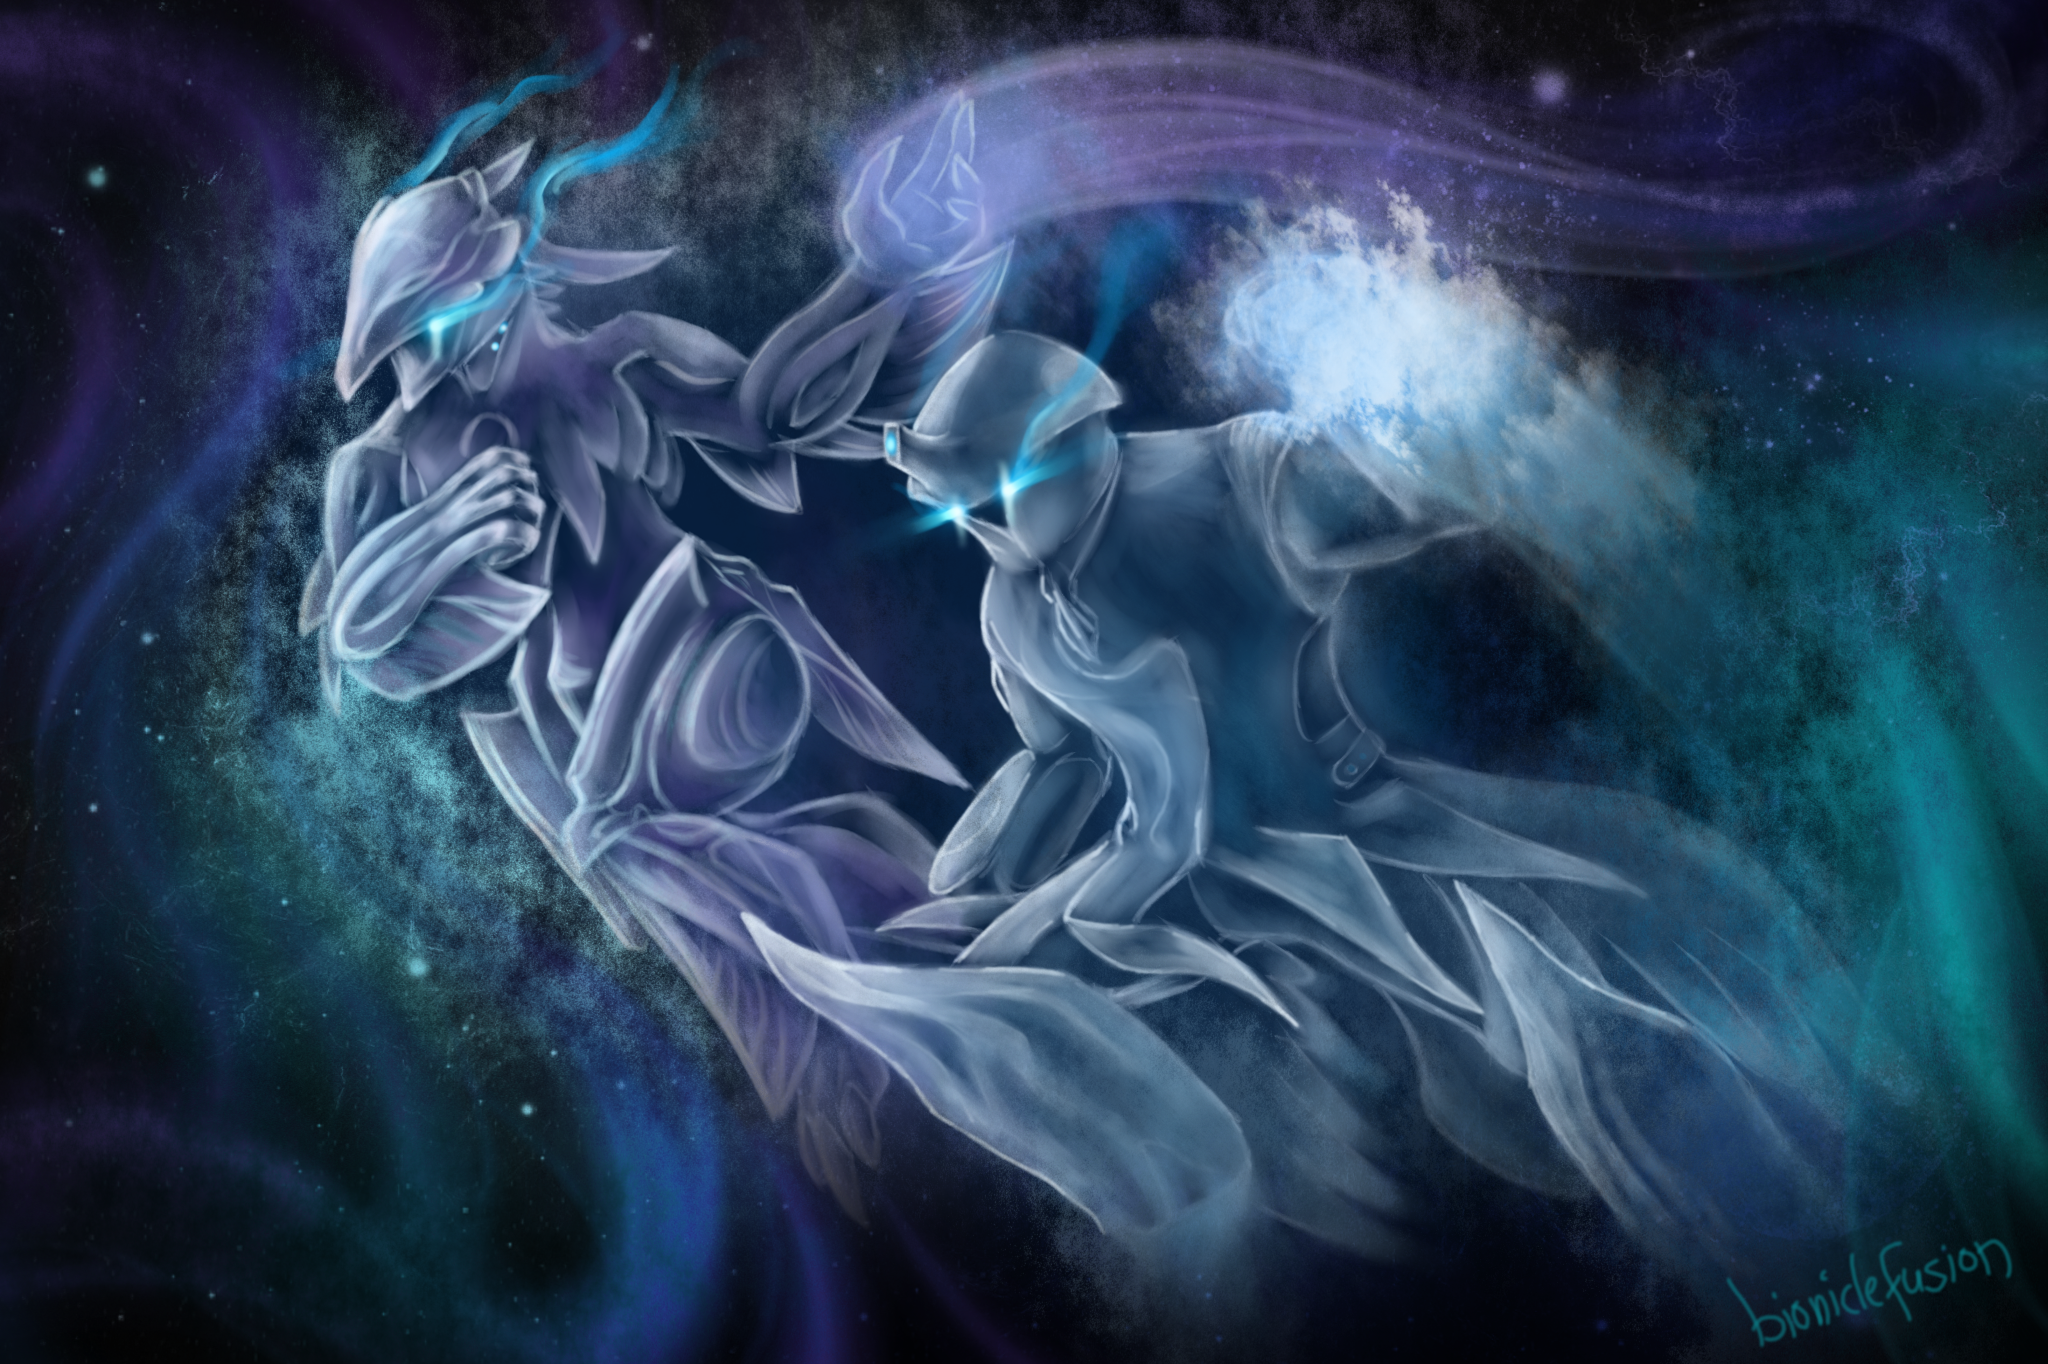 image_by_bioniclefusion-dacntzs.png